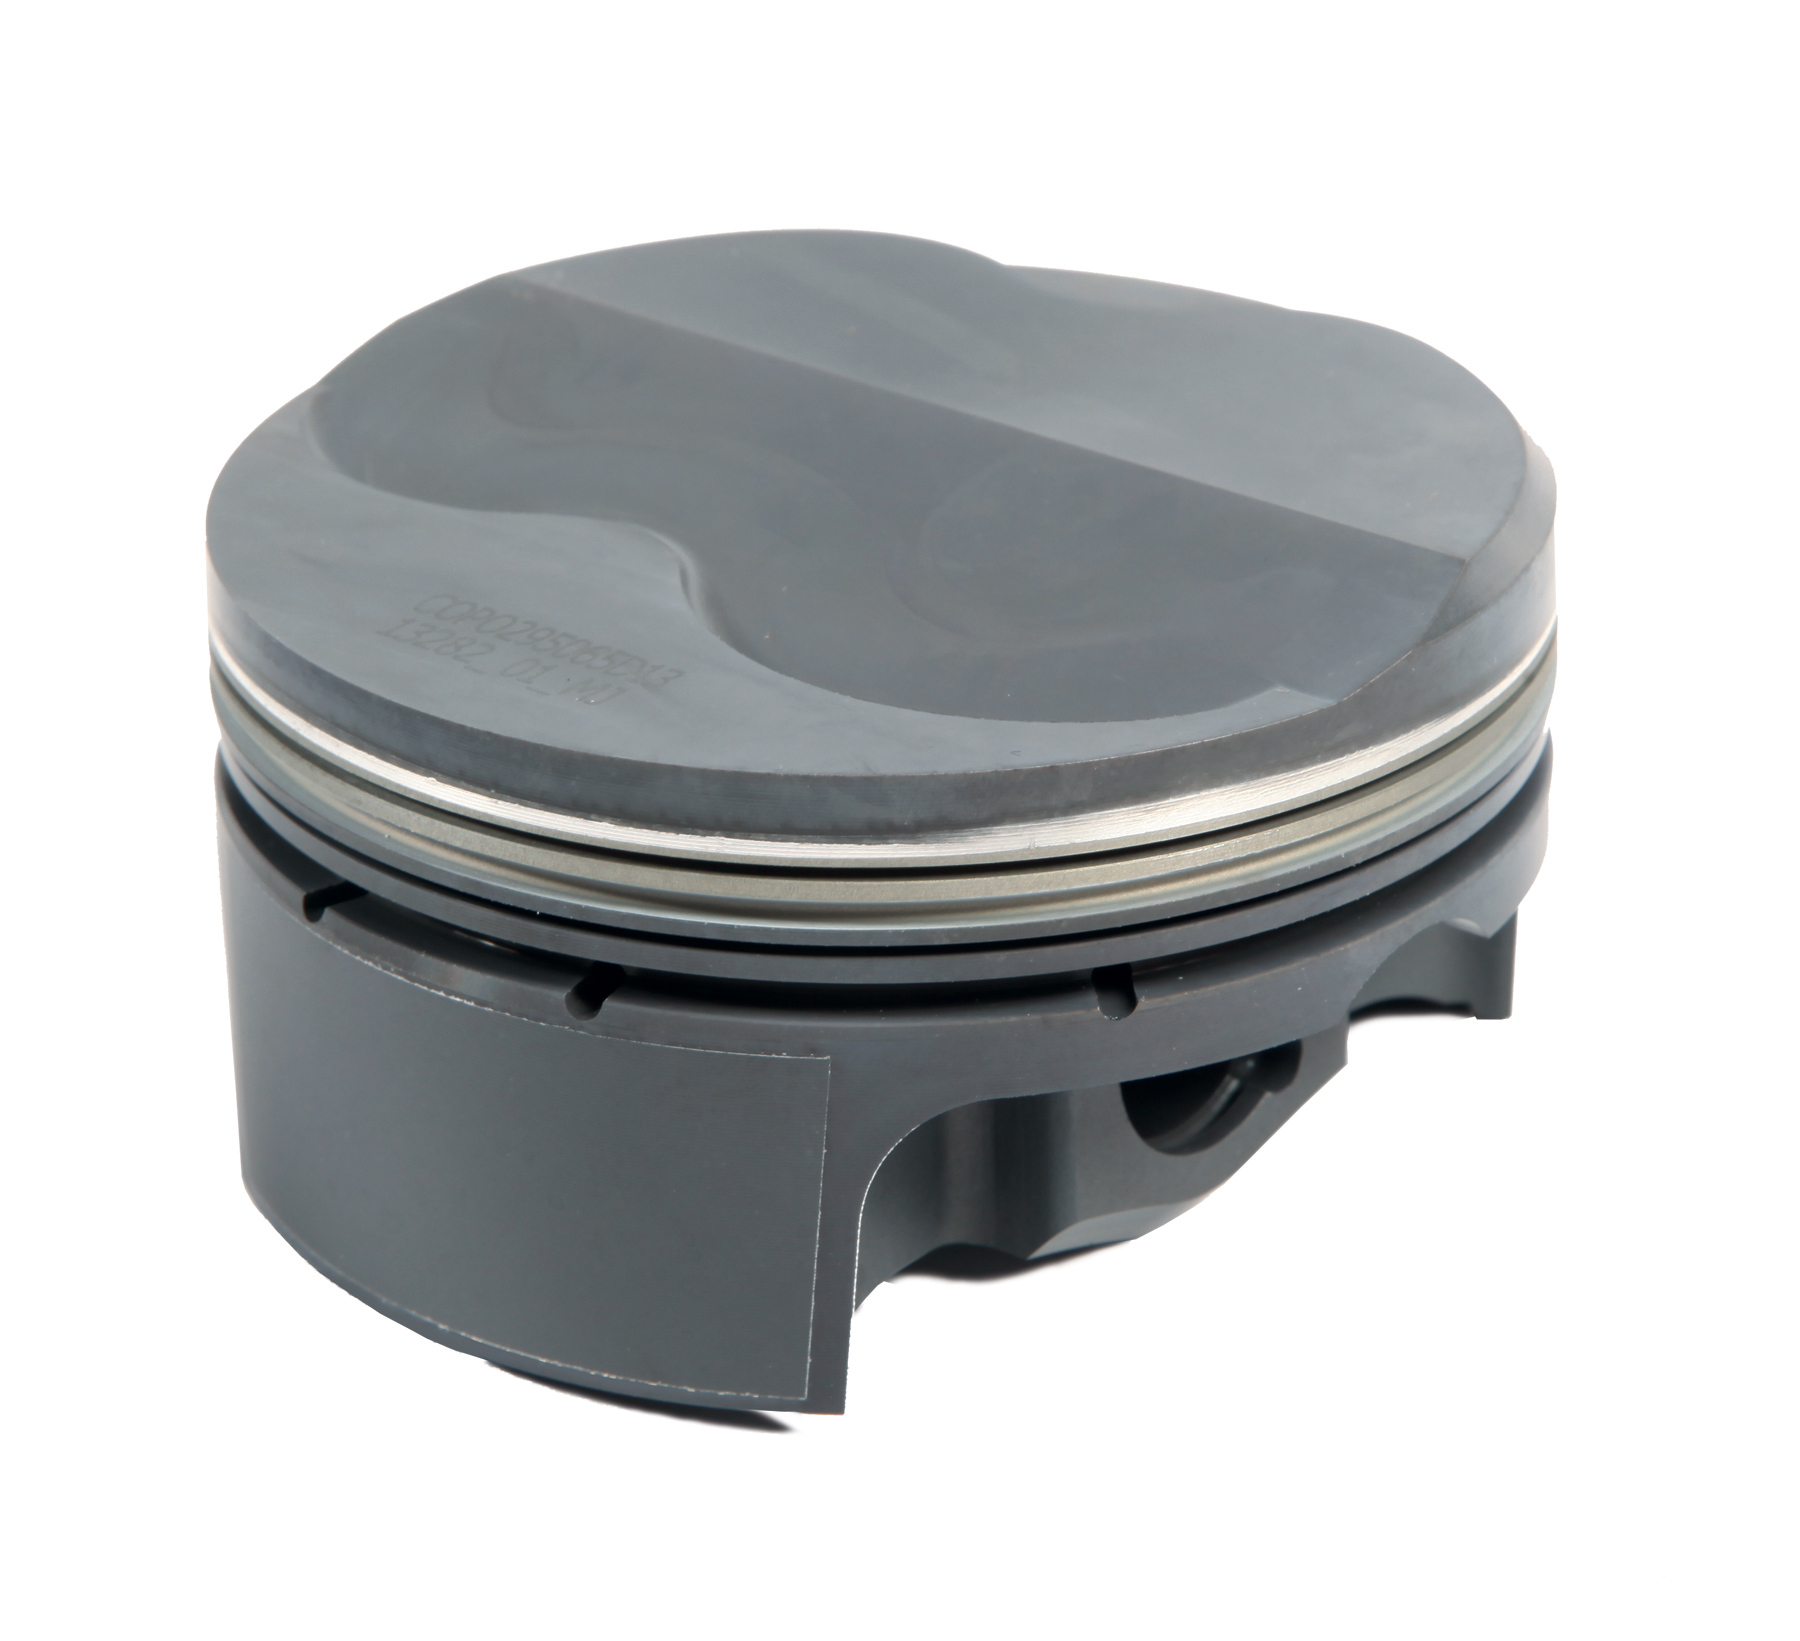 Building An LS-Based Drag Racing Engine? MAHLE Motorsports Has Domed Pistons For You!